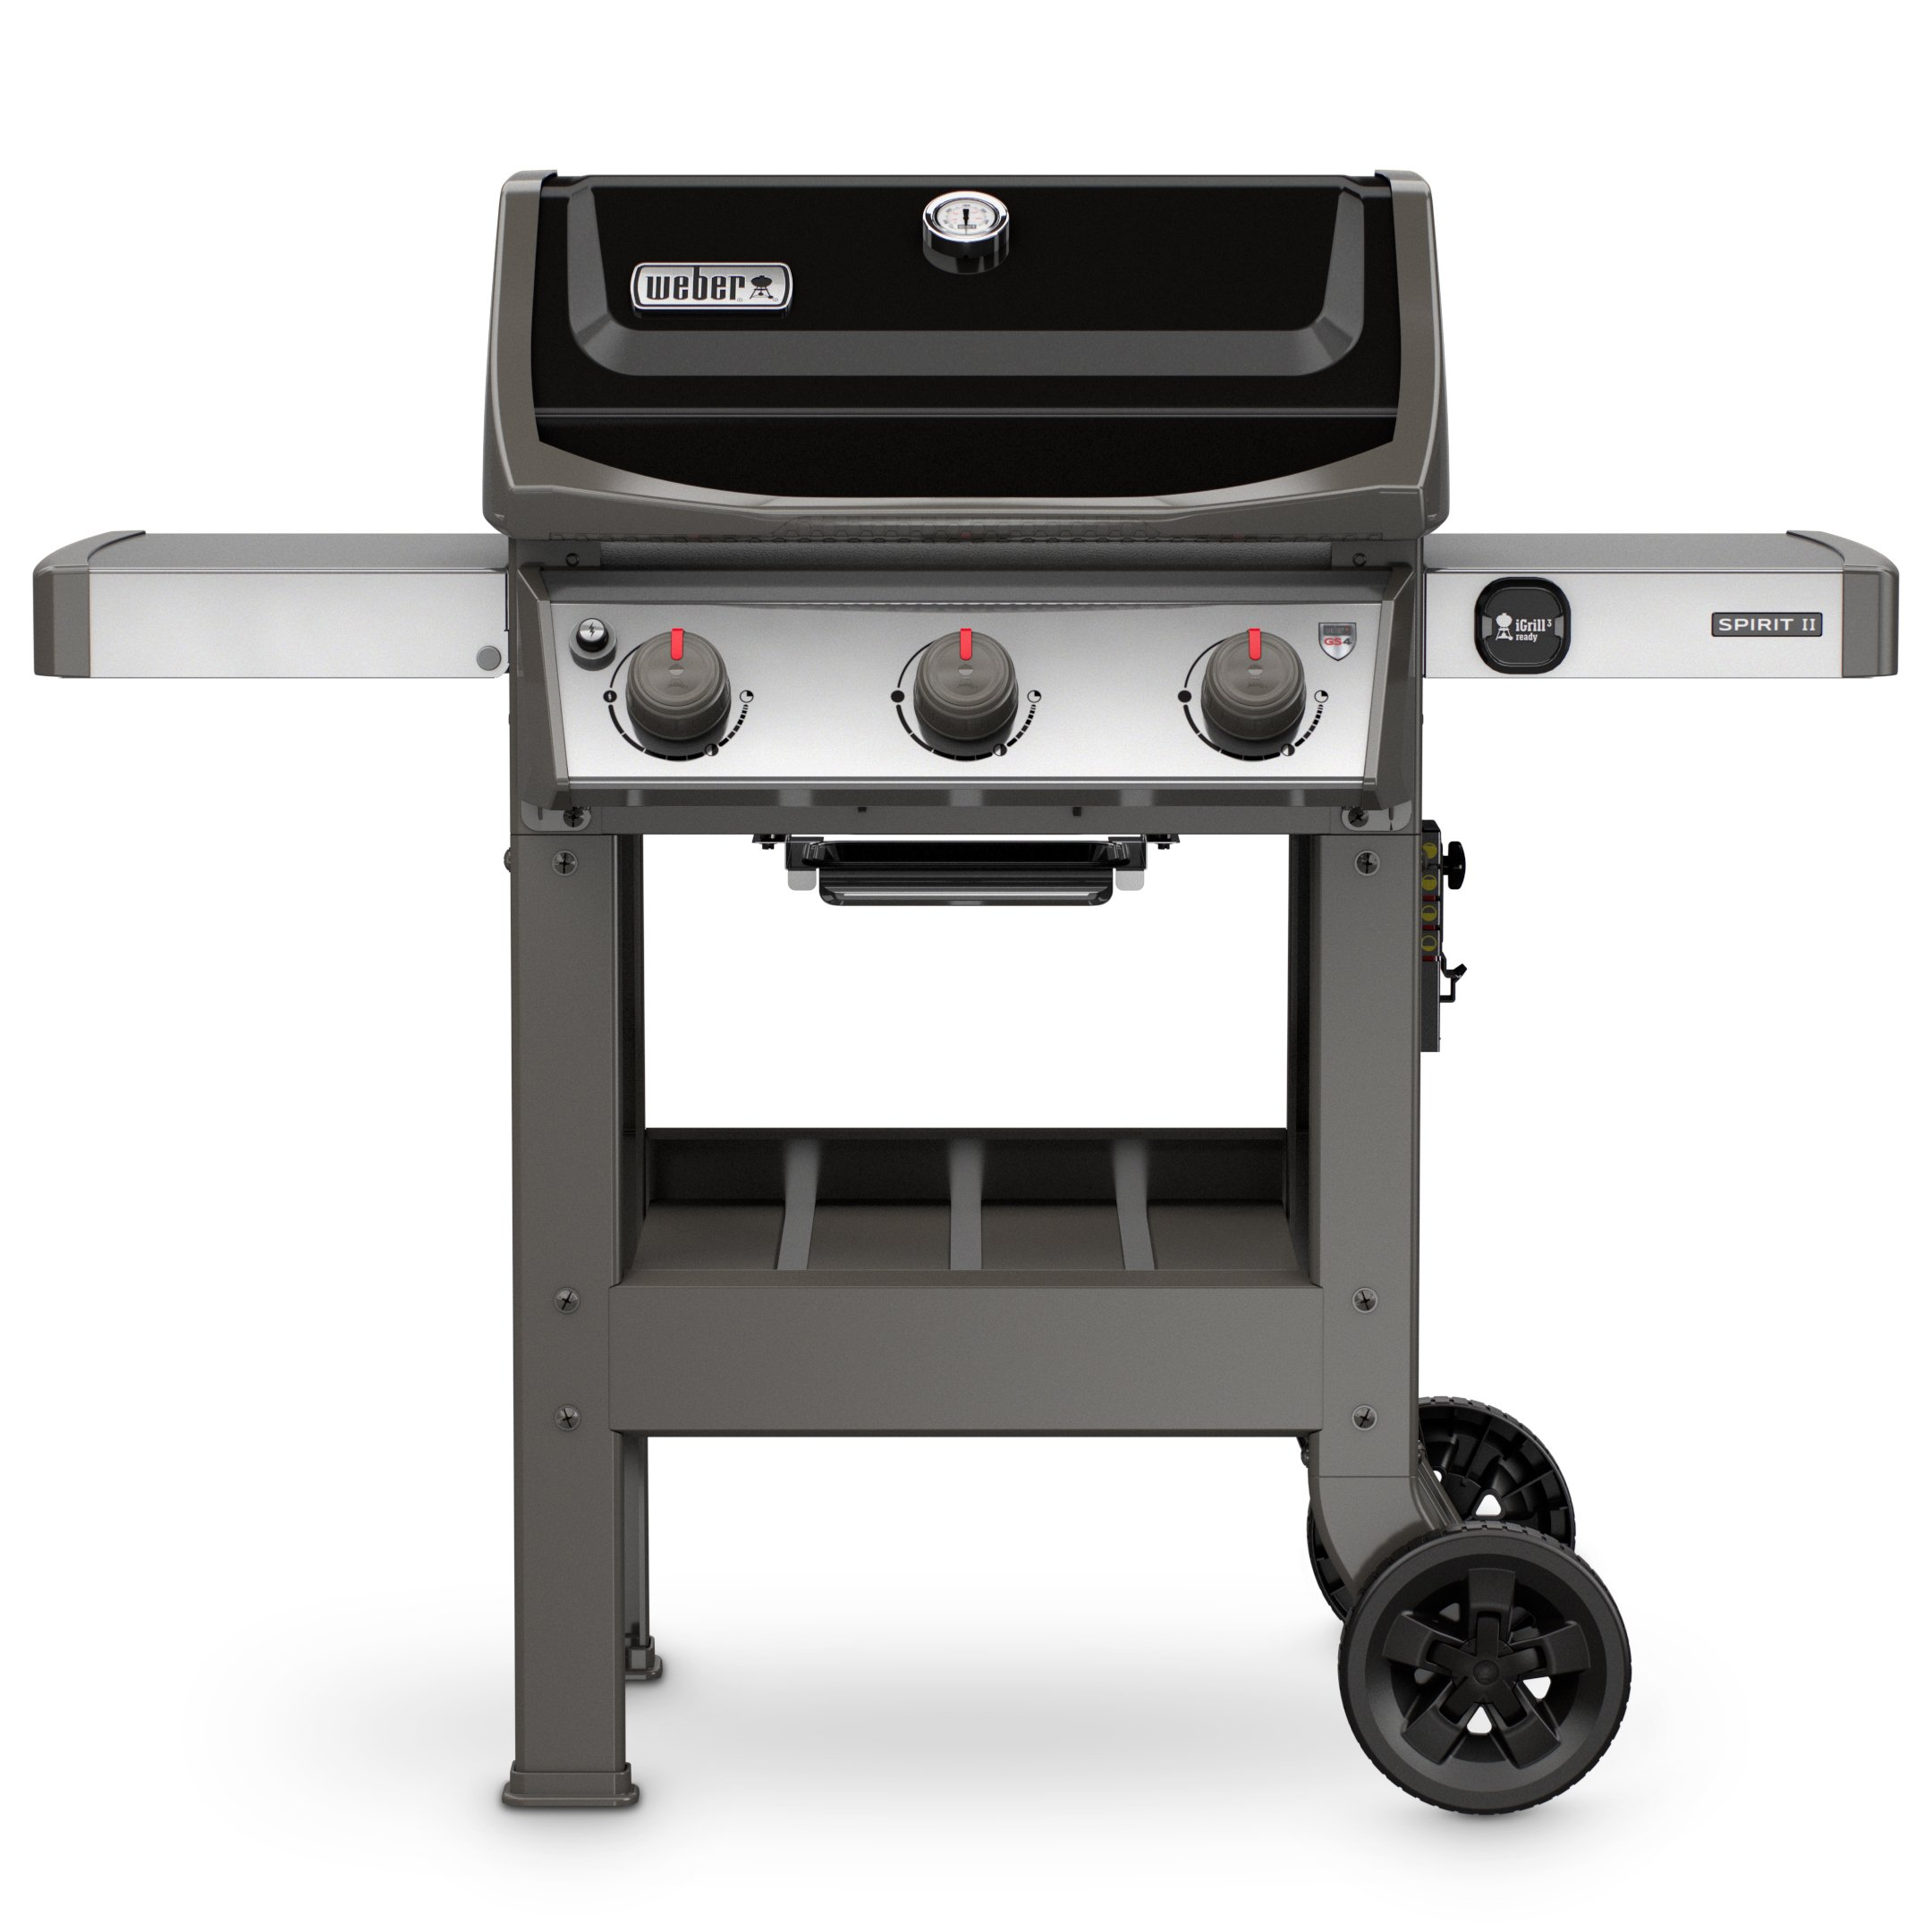 Weber 45010001 Spirit II E-310 3-Burner Liquid Propane Grill, Black by Weber